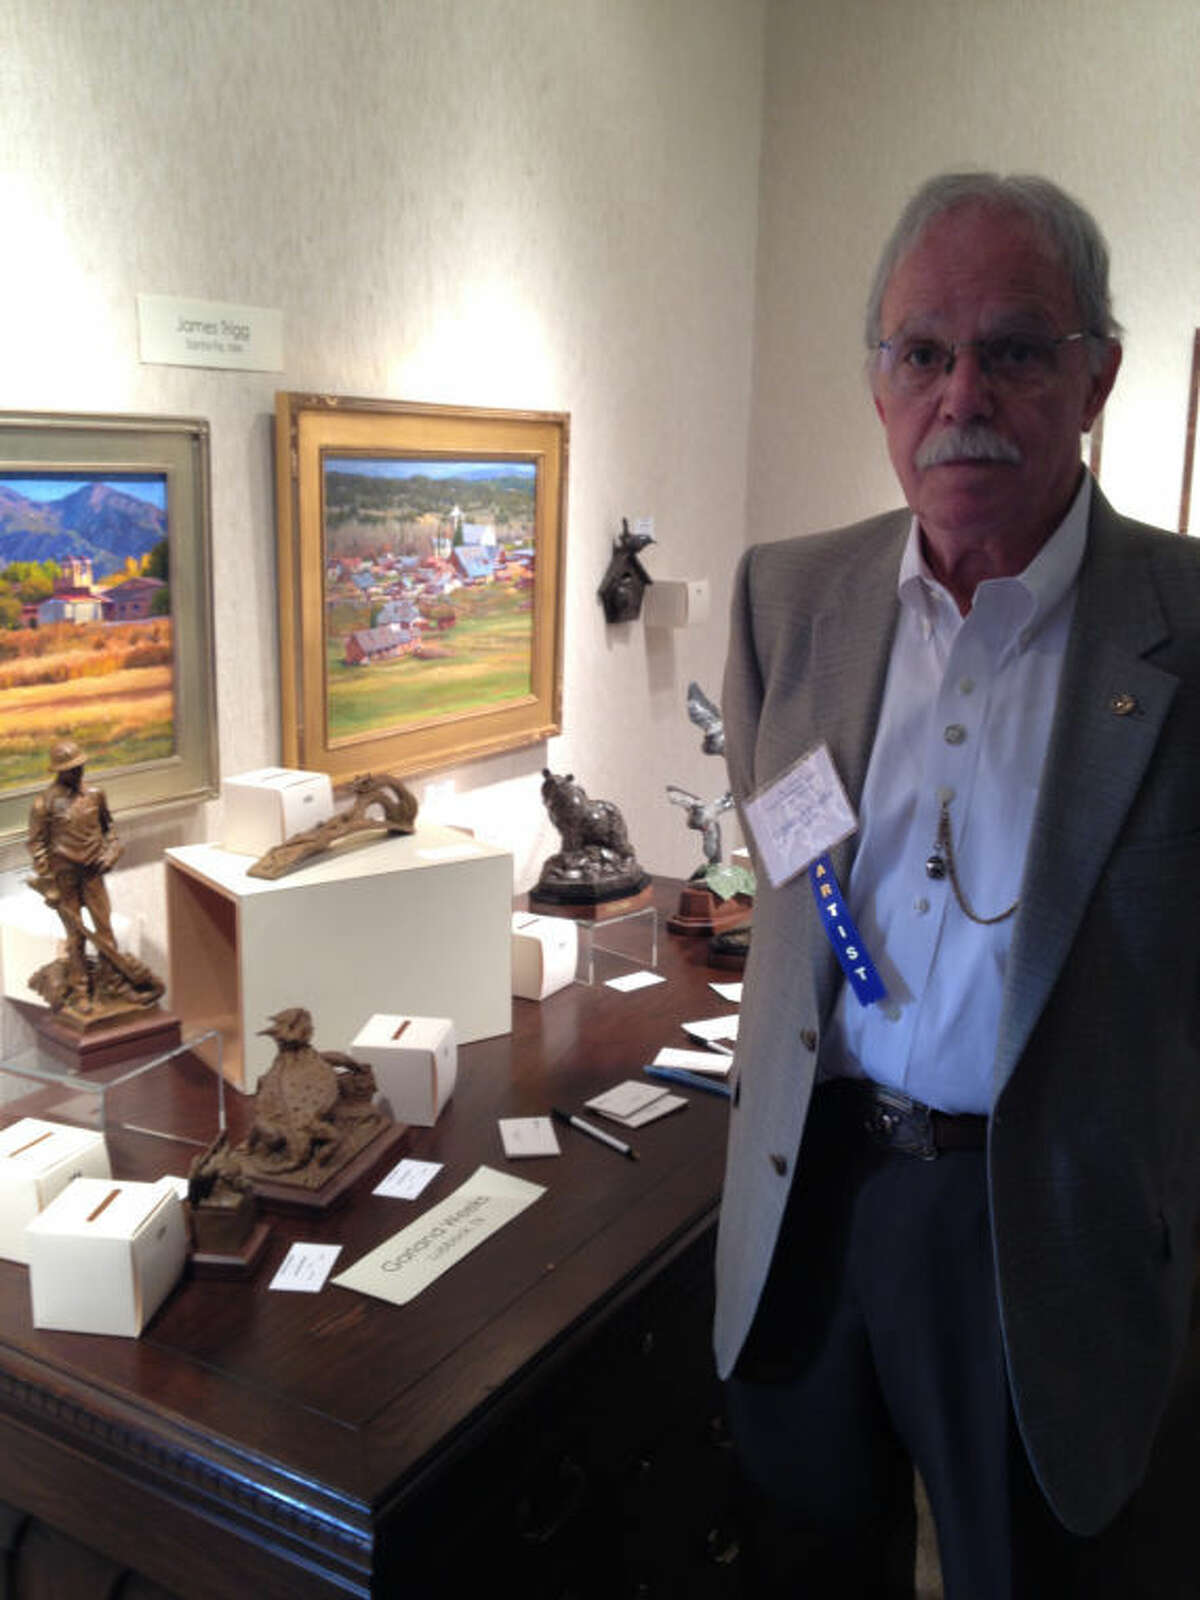 Garland Weeks, a sculptor based in Lubbock, is showing his works at the 36th Annual Invitational Art Show and Sale this week at the Haley Library.